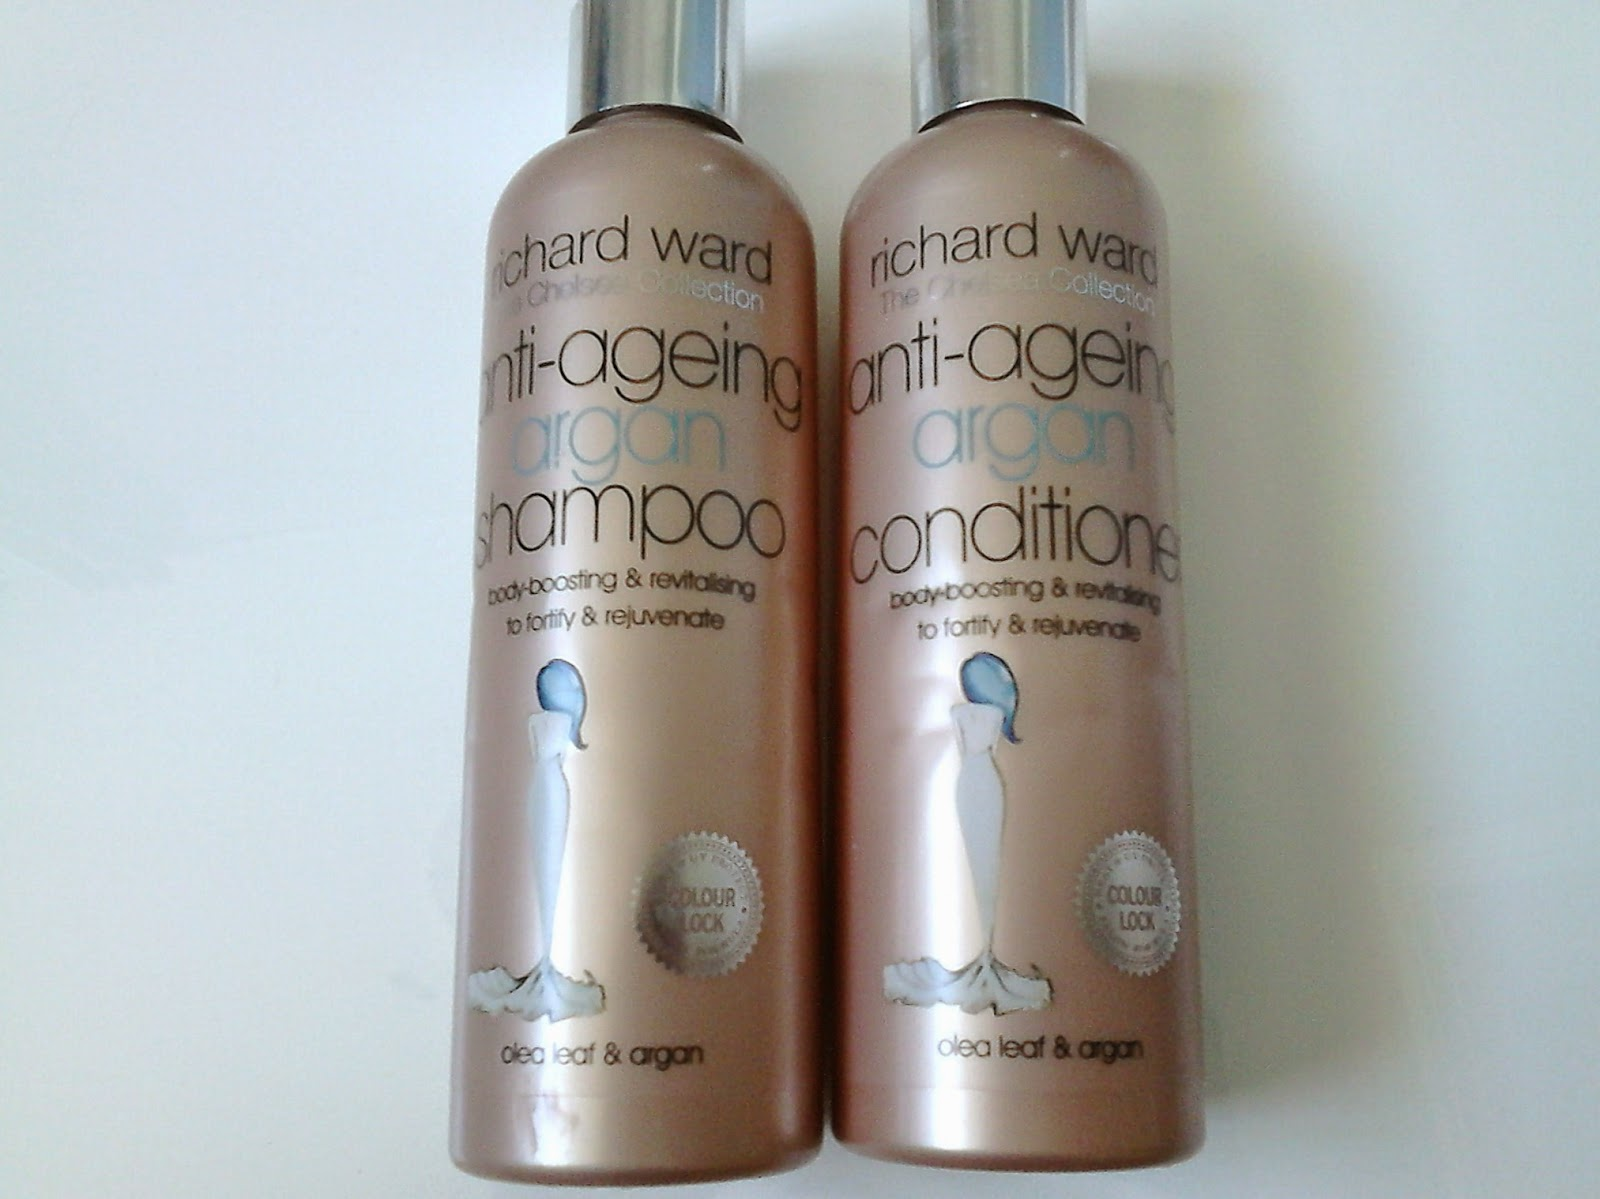 Richard Ward Anti-Ageing Argan Shampoo and Conditioner